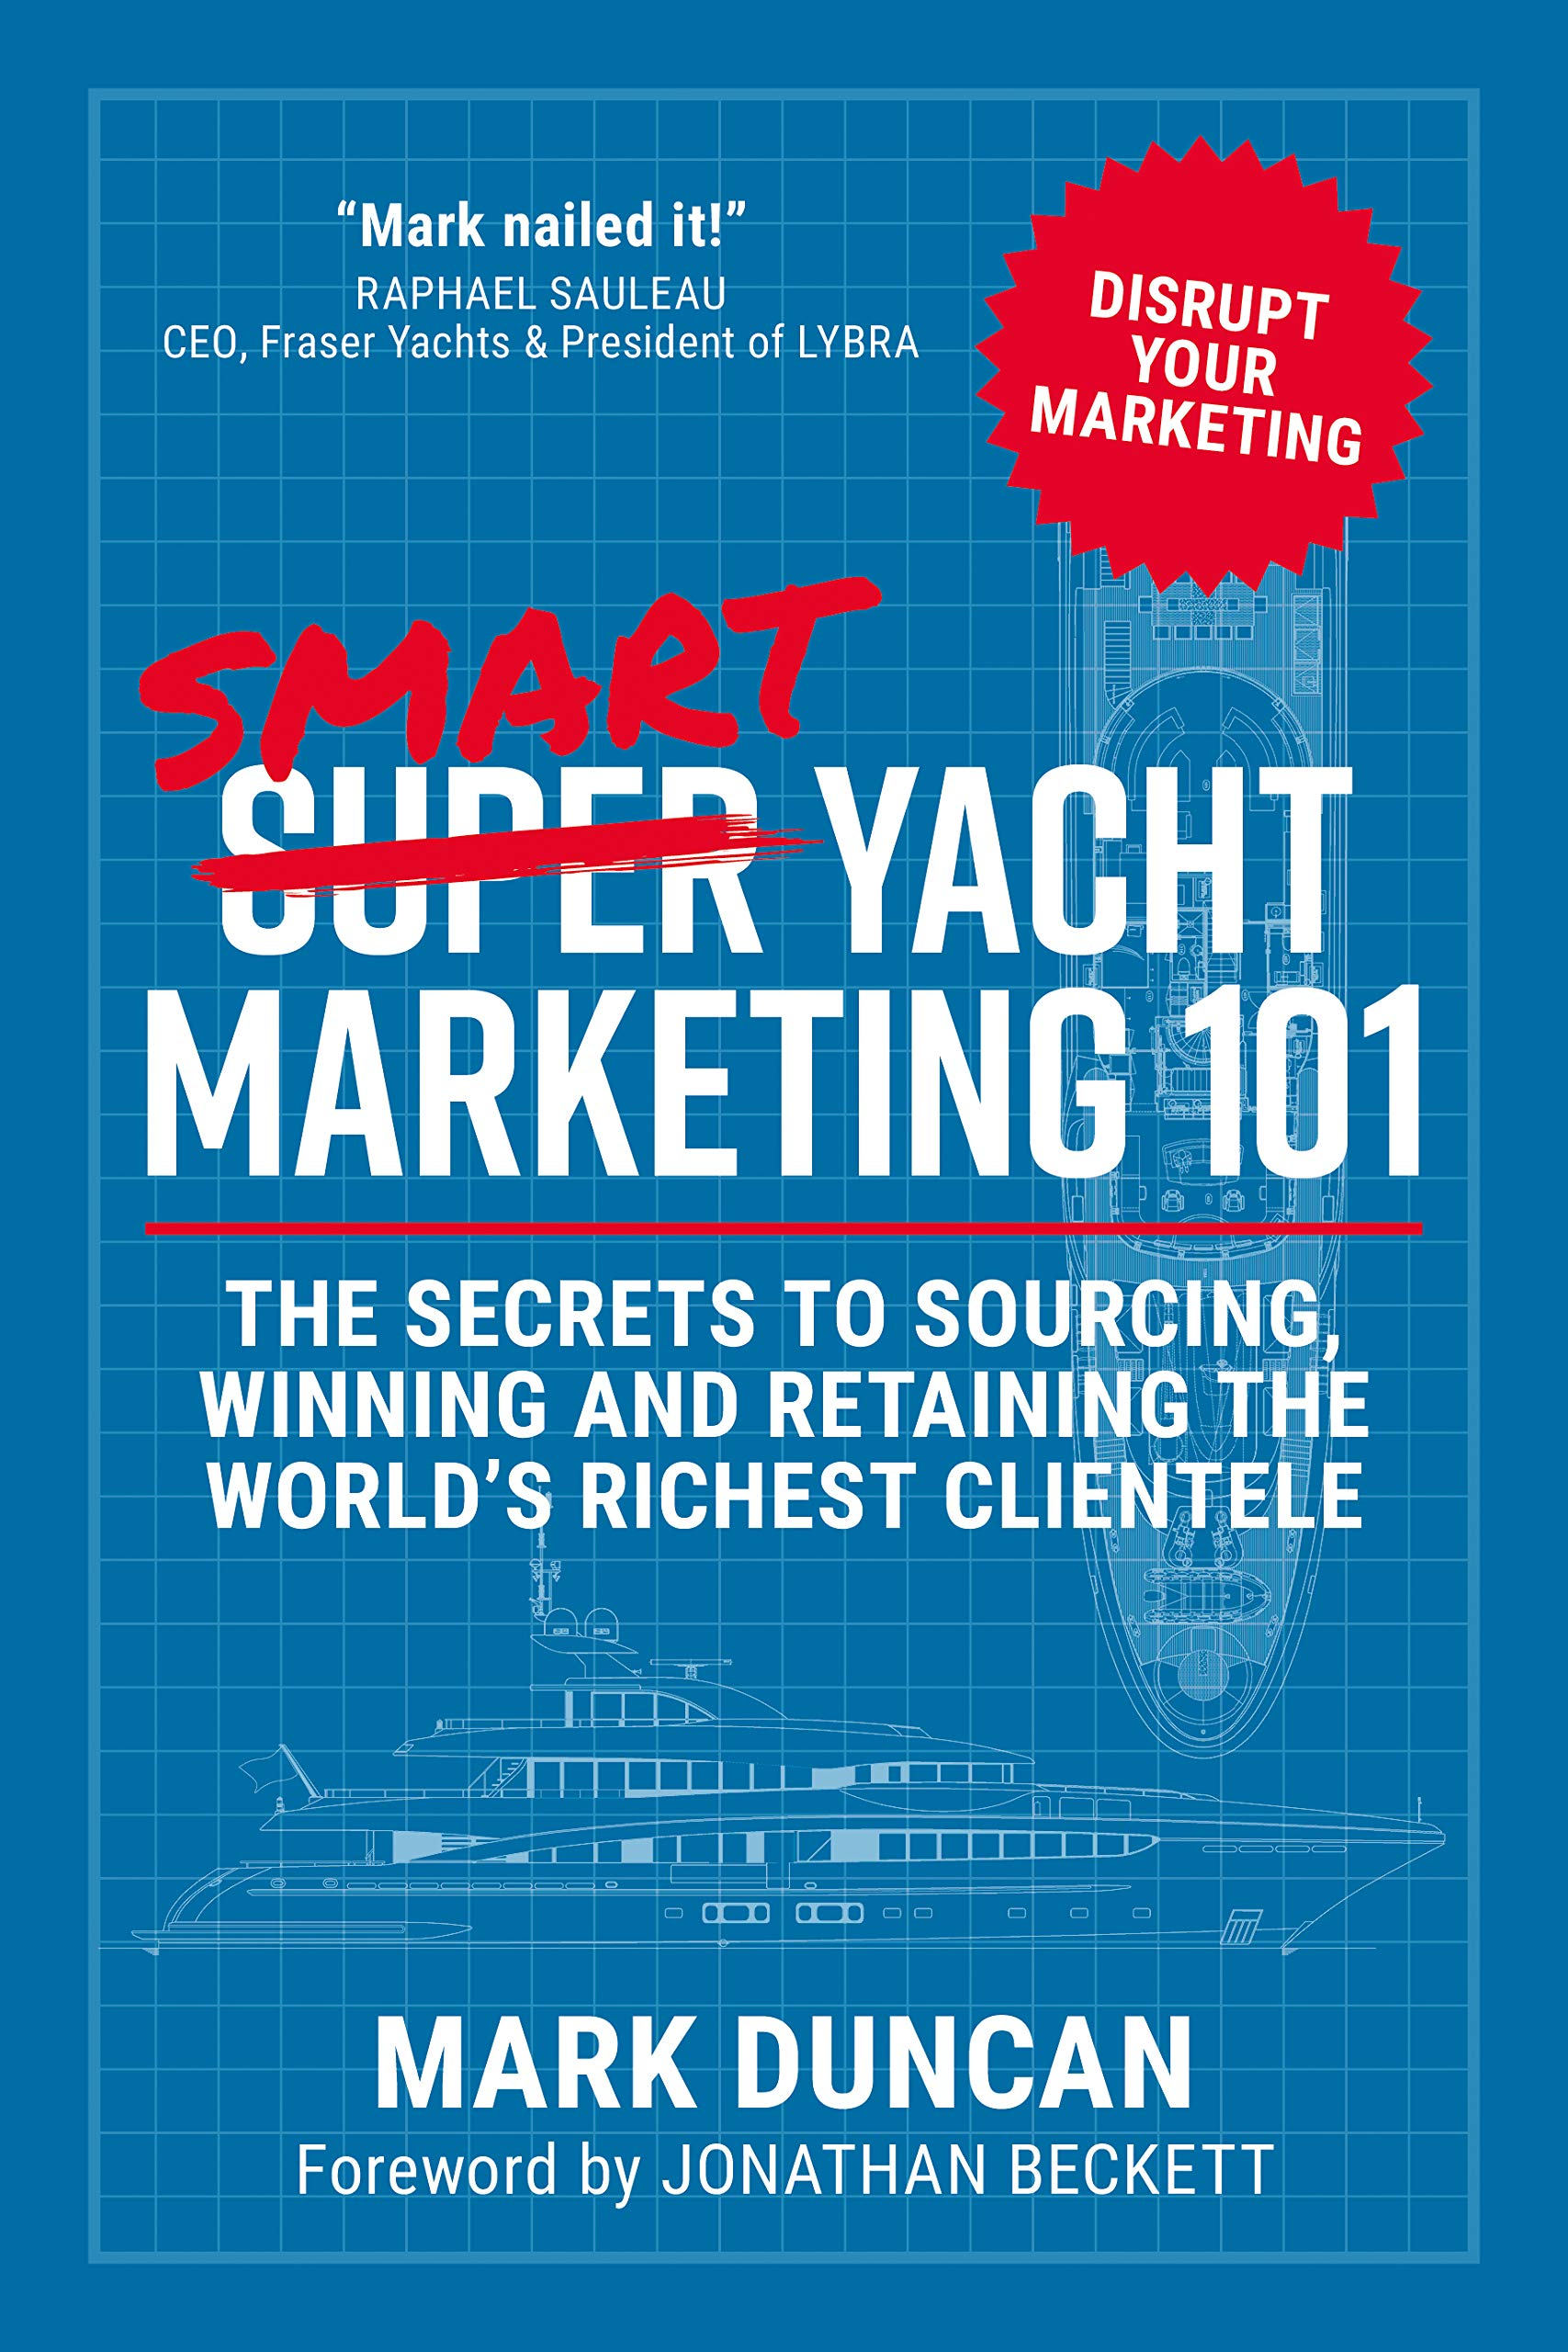 Download Smart Yacht Marketing 101: The Secrets To Sourcing, Winning And Retaining The World's Richest Clientele (English Edition) 